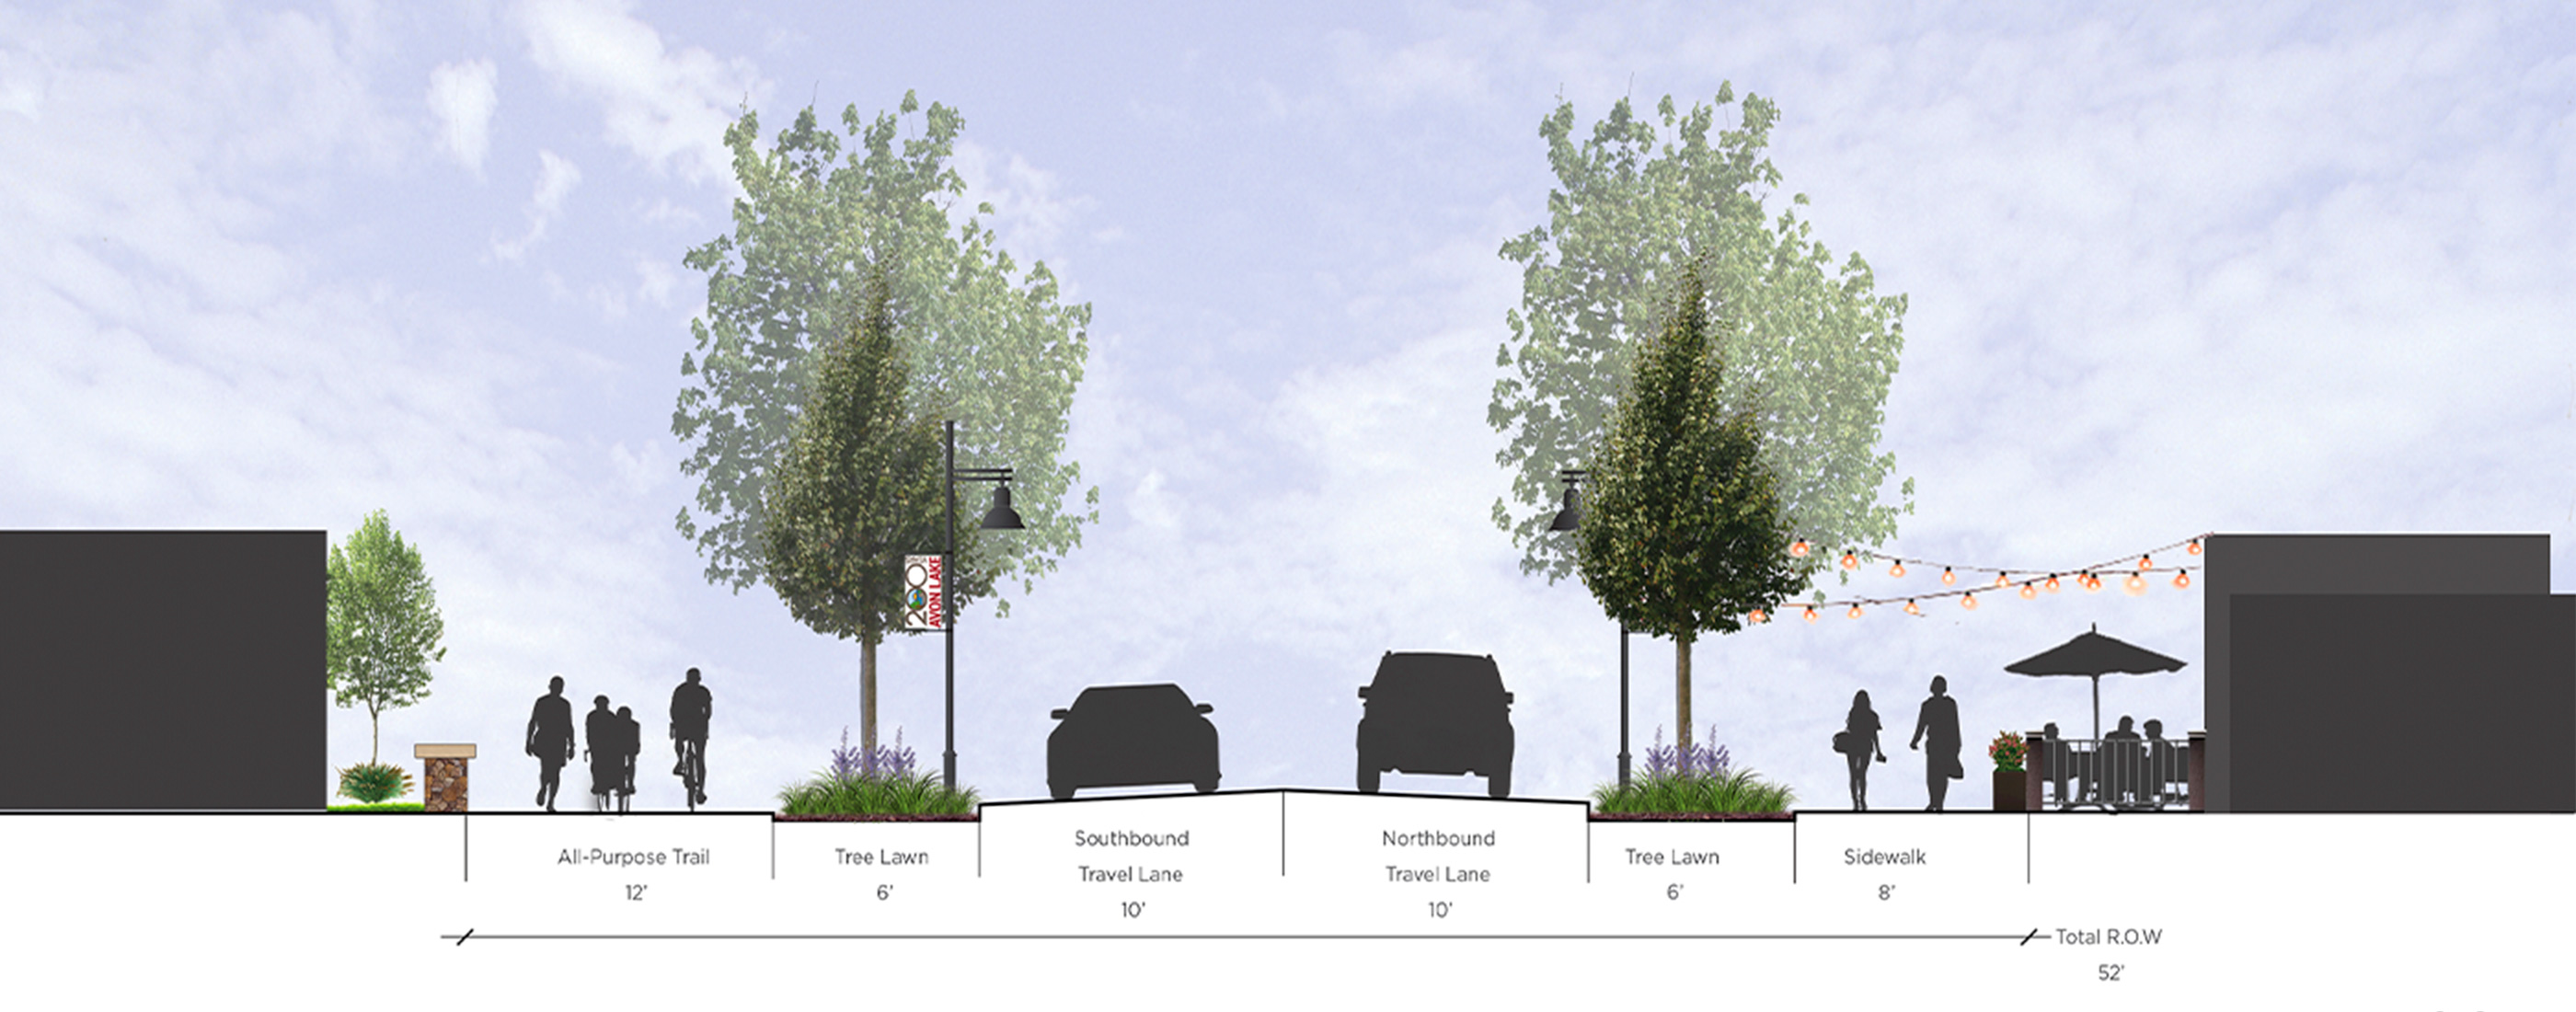 Proposed updates to Lear Street in the City of Avon Lake, Ohio.